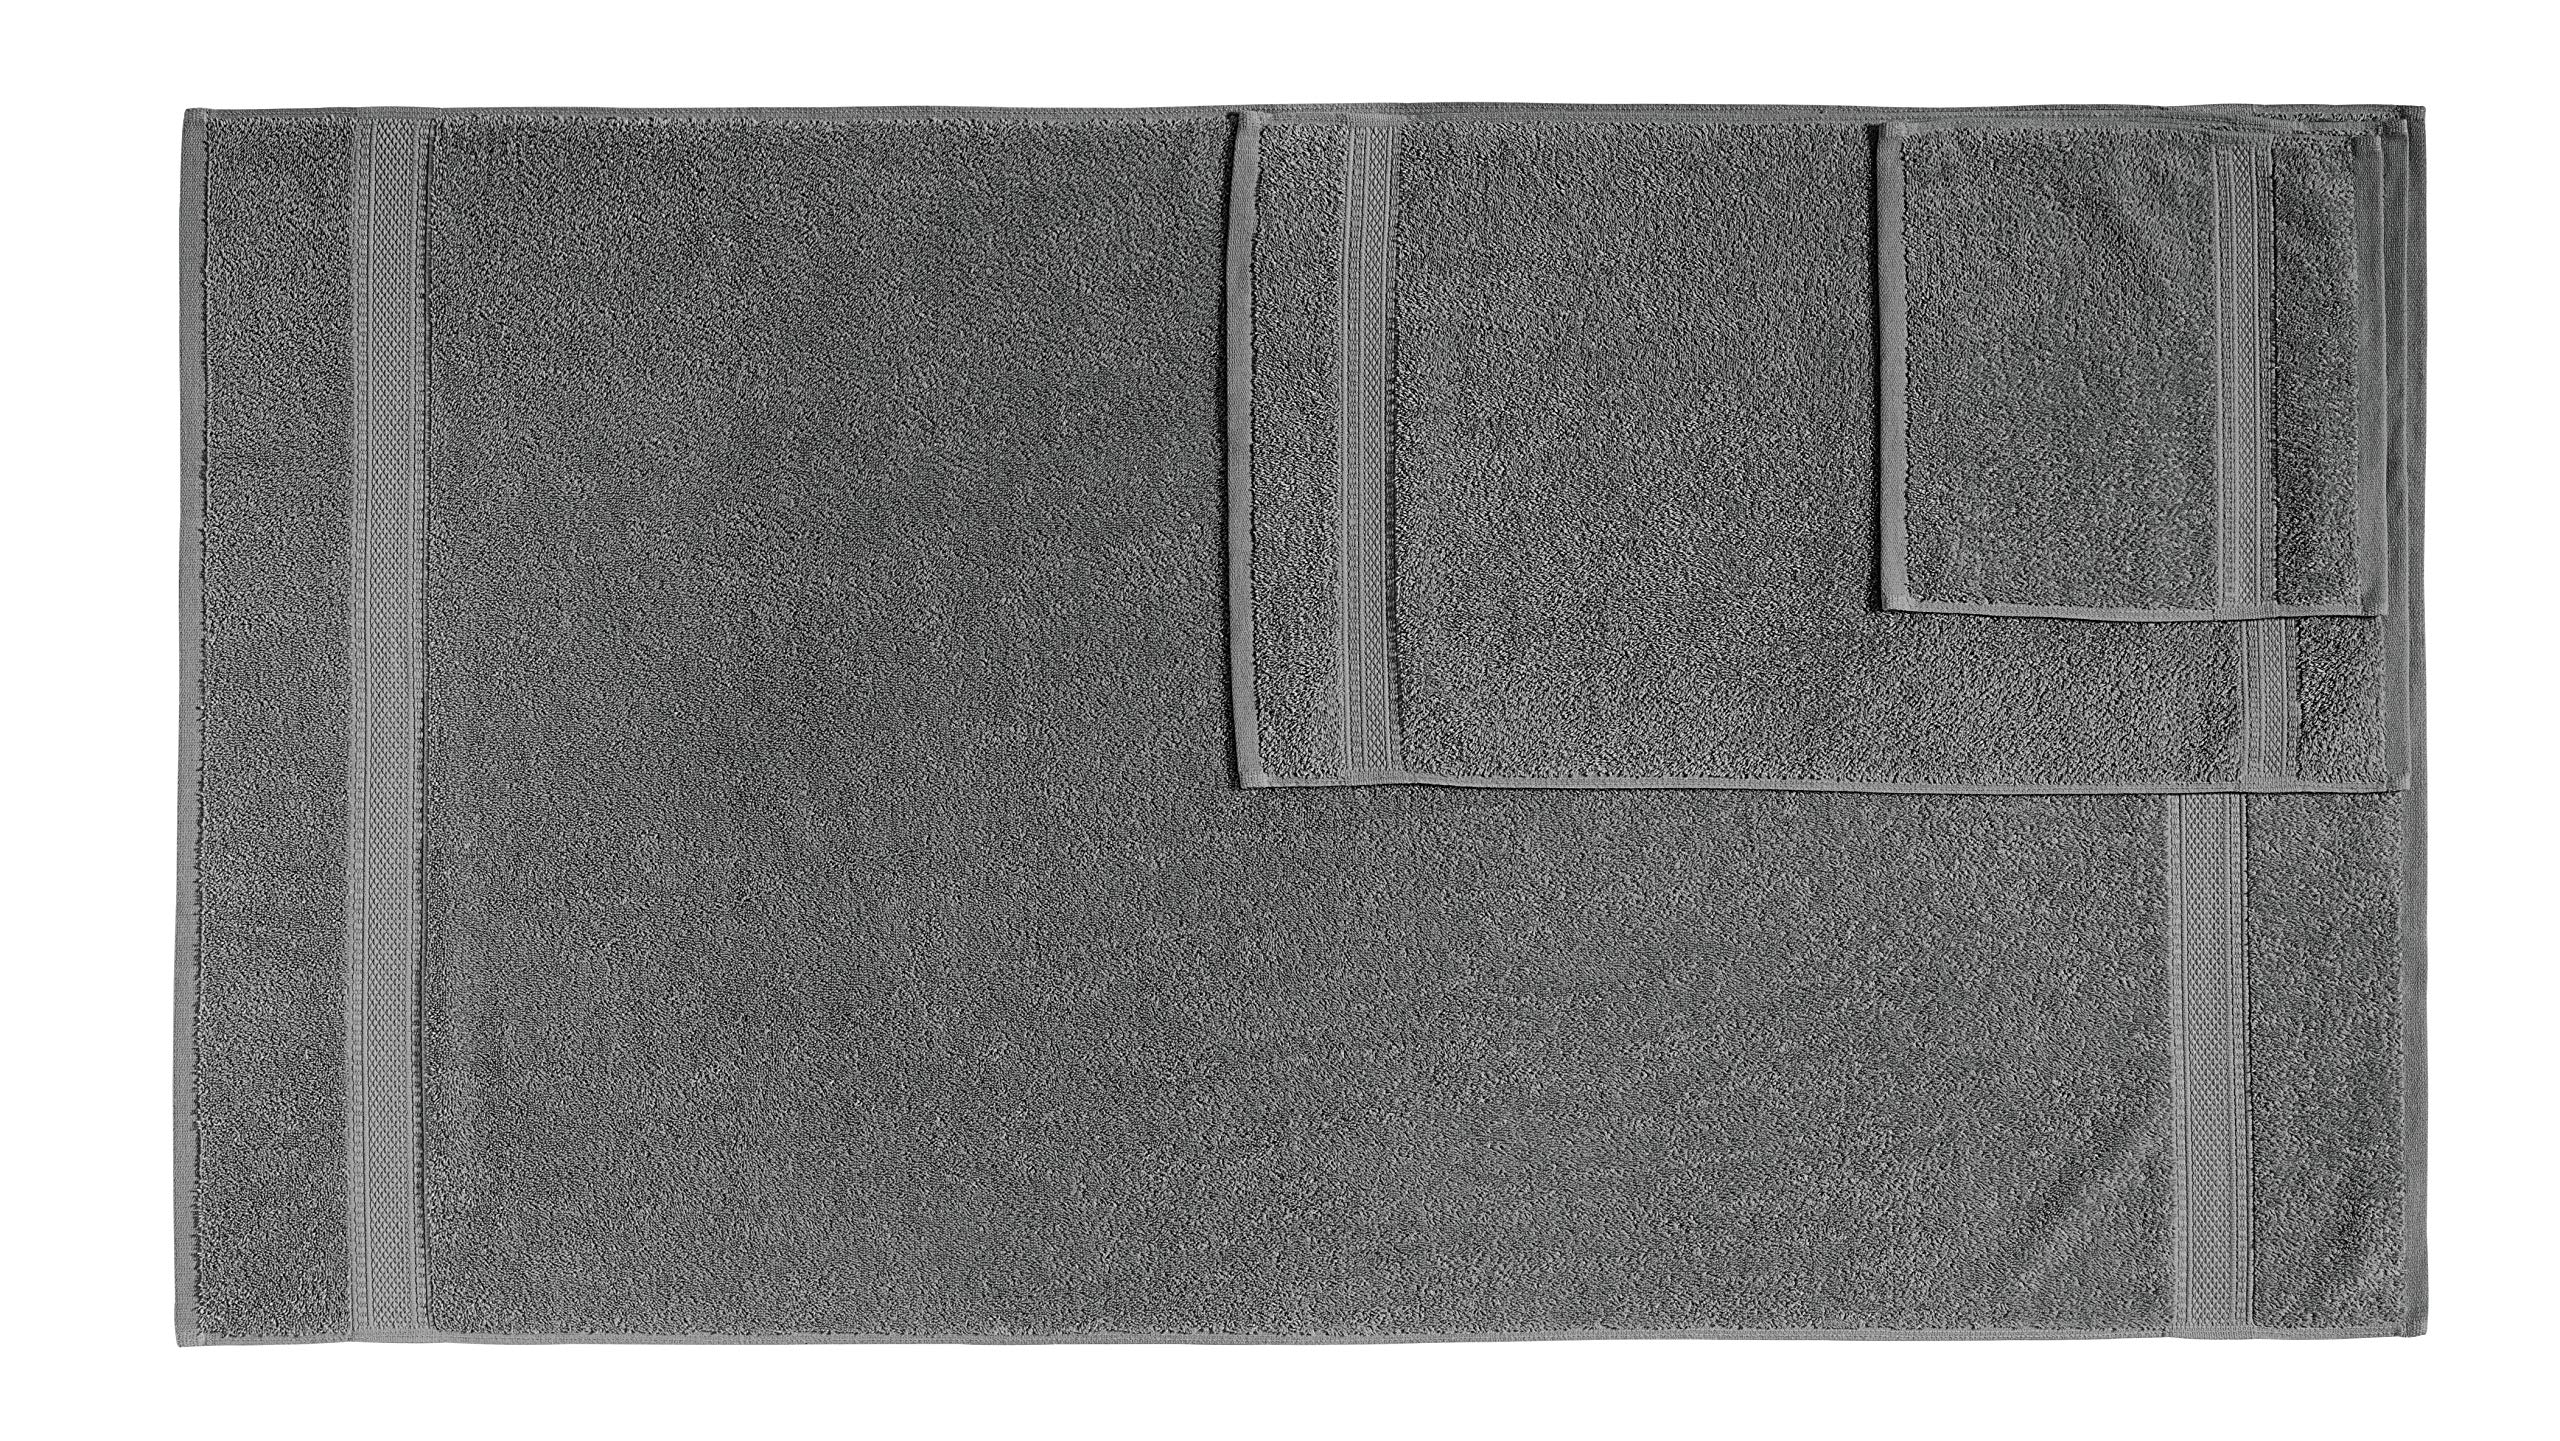 100% Cotton 6-Piece Towel Set (Dark Grey): 2 Bath Towels, 2 Hand Towels and 2 Washcloths, Classic Amercian Construction, Soft, Highly Absorbent, Machine Washable